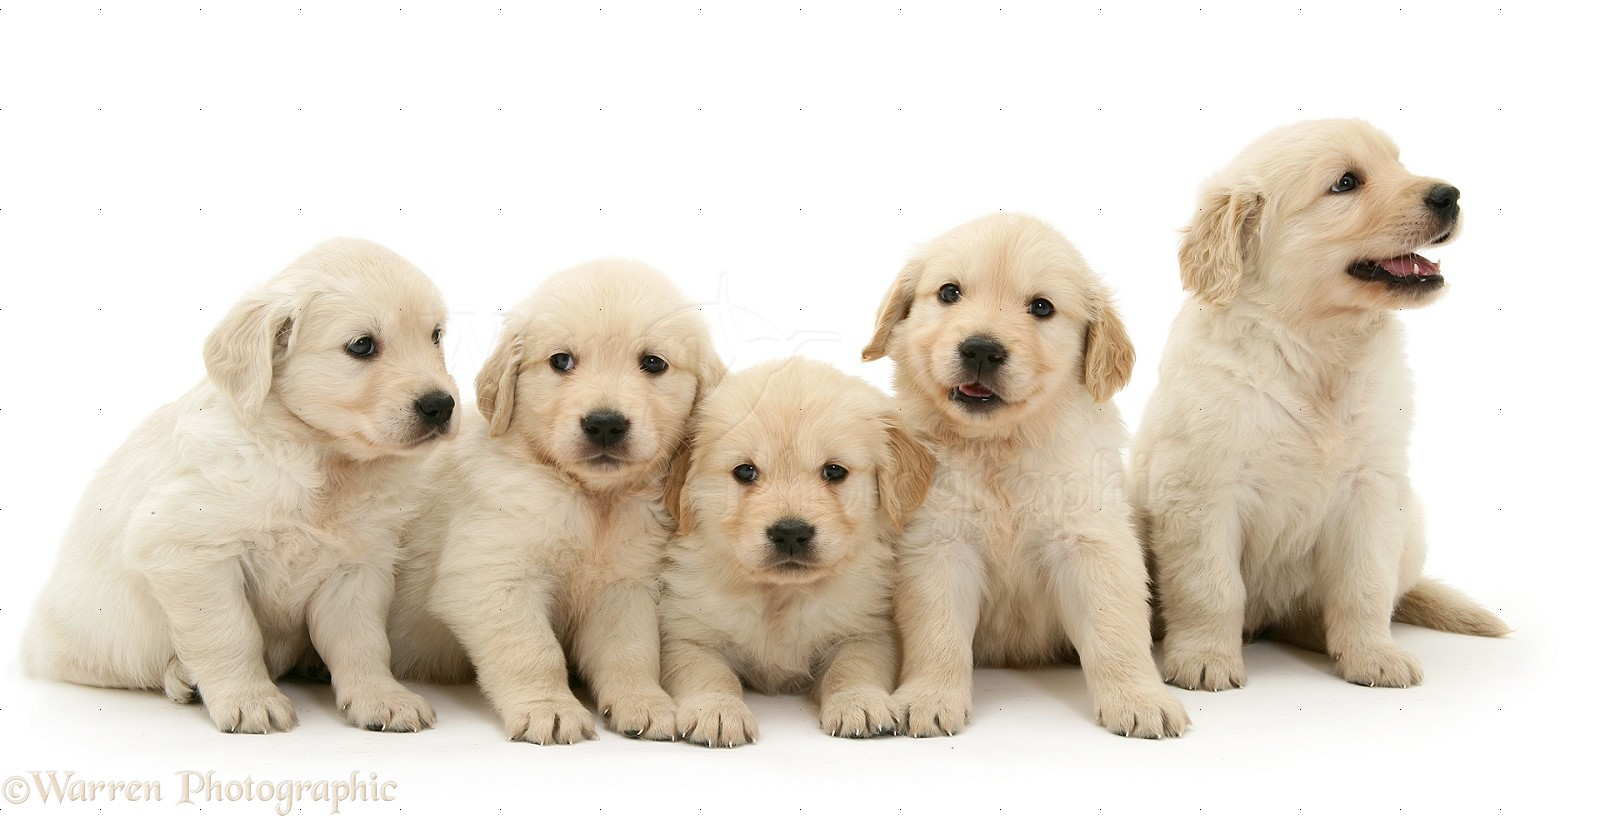 dogs five golden retriever puppies in a row photo wp14072 clip art puppies and dogs clip art puppy dog pals